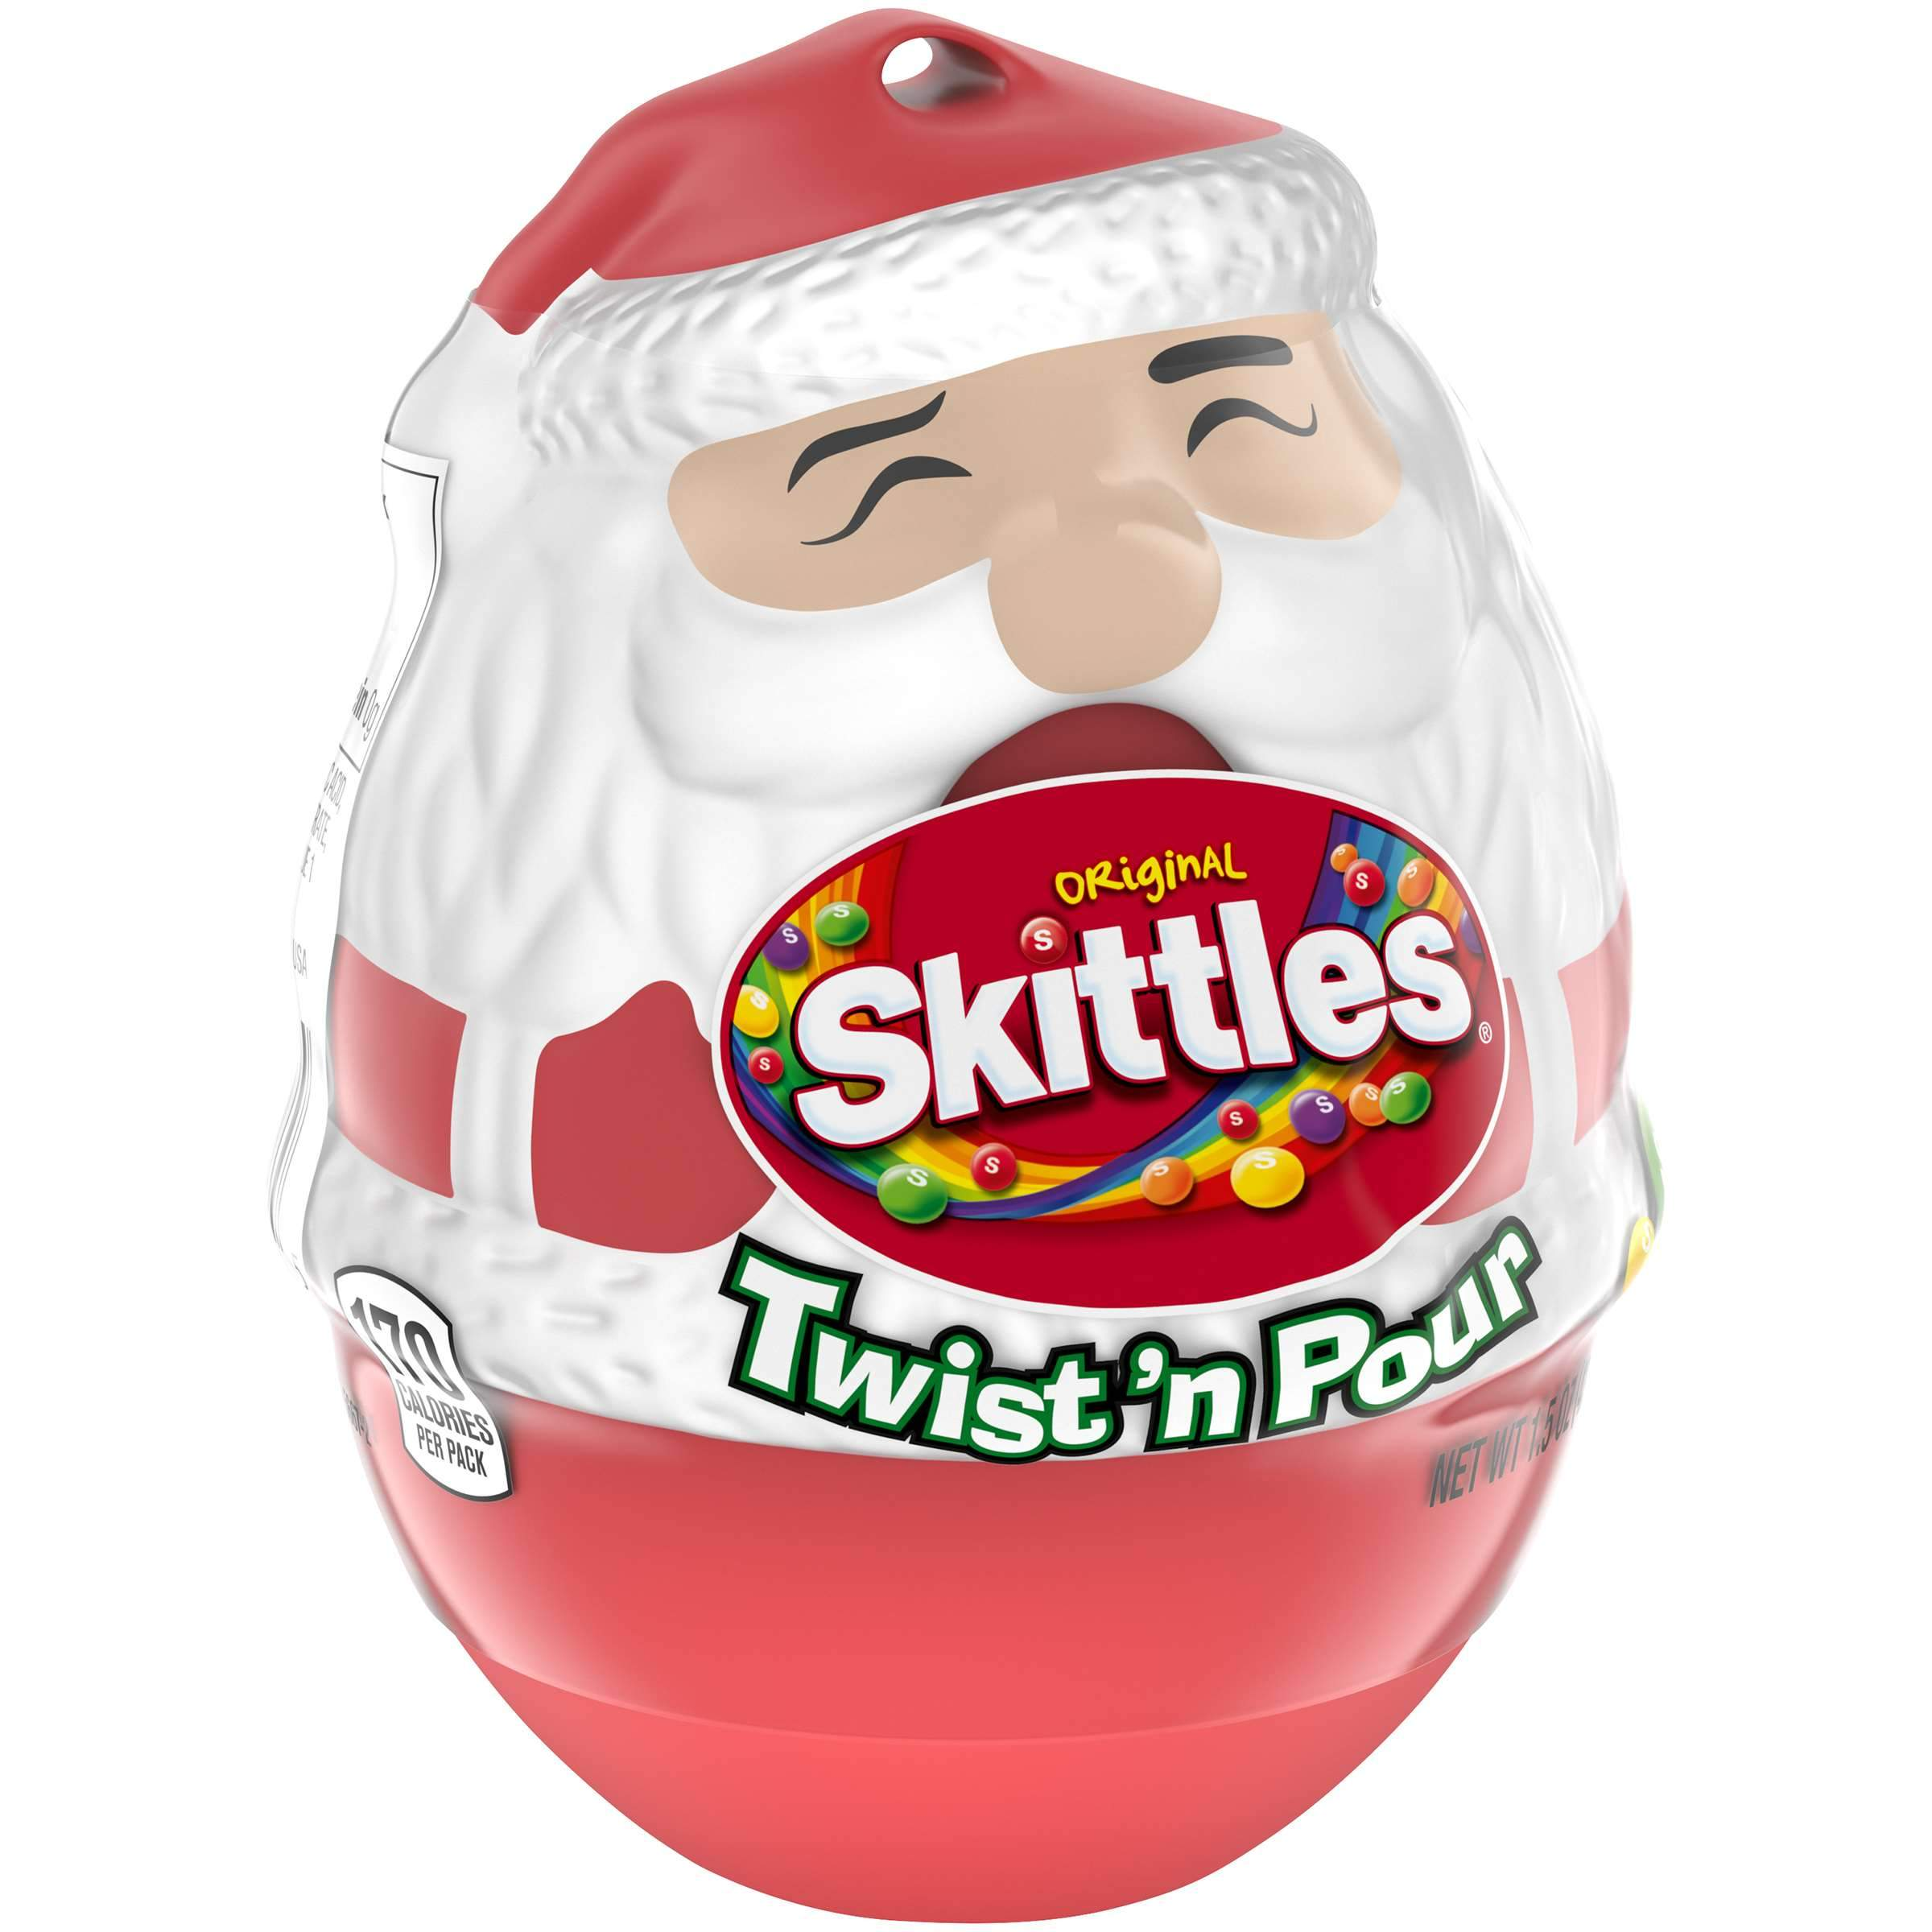 Skittle Holiday Skittles Twist & Pour - Original 1.5 Ounce